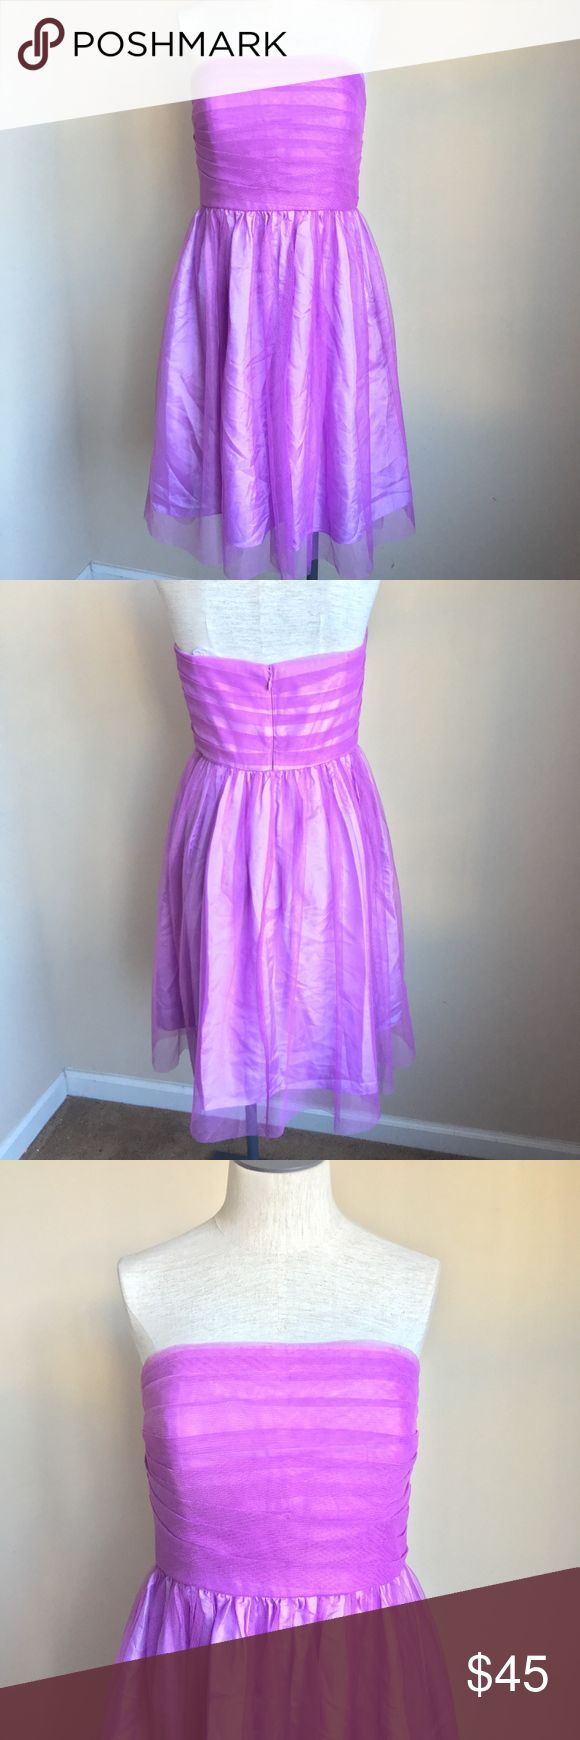 """Donna Morgan Tulle Strapless Dress Lilac Purple Donna Morgan Tulle Strapless Dress Lilac Purple  Womens size 6  100% Polyester  Great condition with no visible flaws  Strapless  Zips up the bak  Measurements taken while laying flat:  """" armpit to armpit """" length  """" waist Donna Morgan Dresses Strapless"""